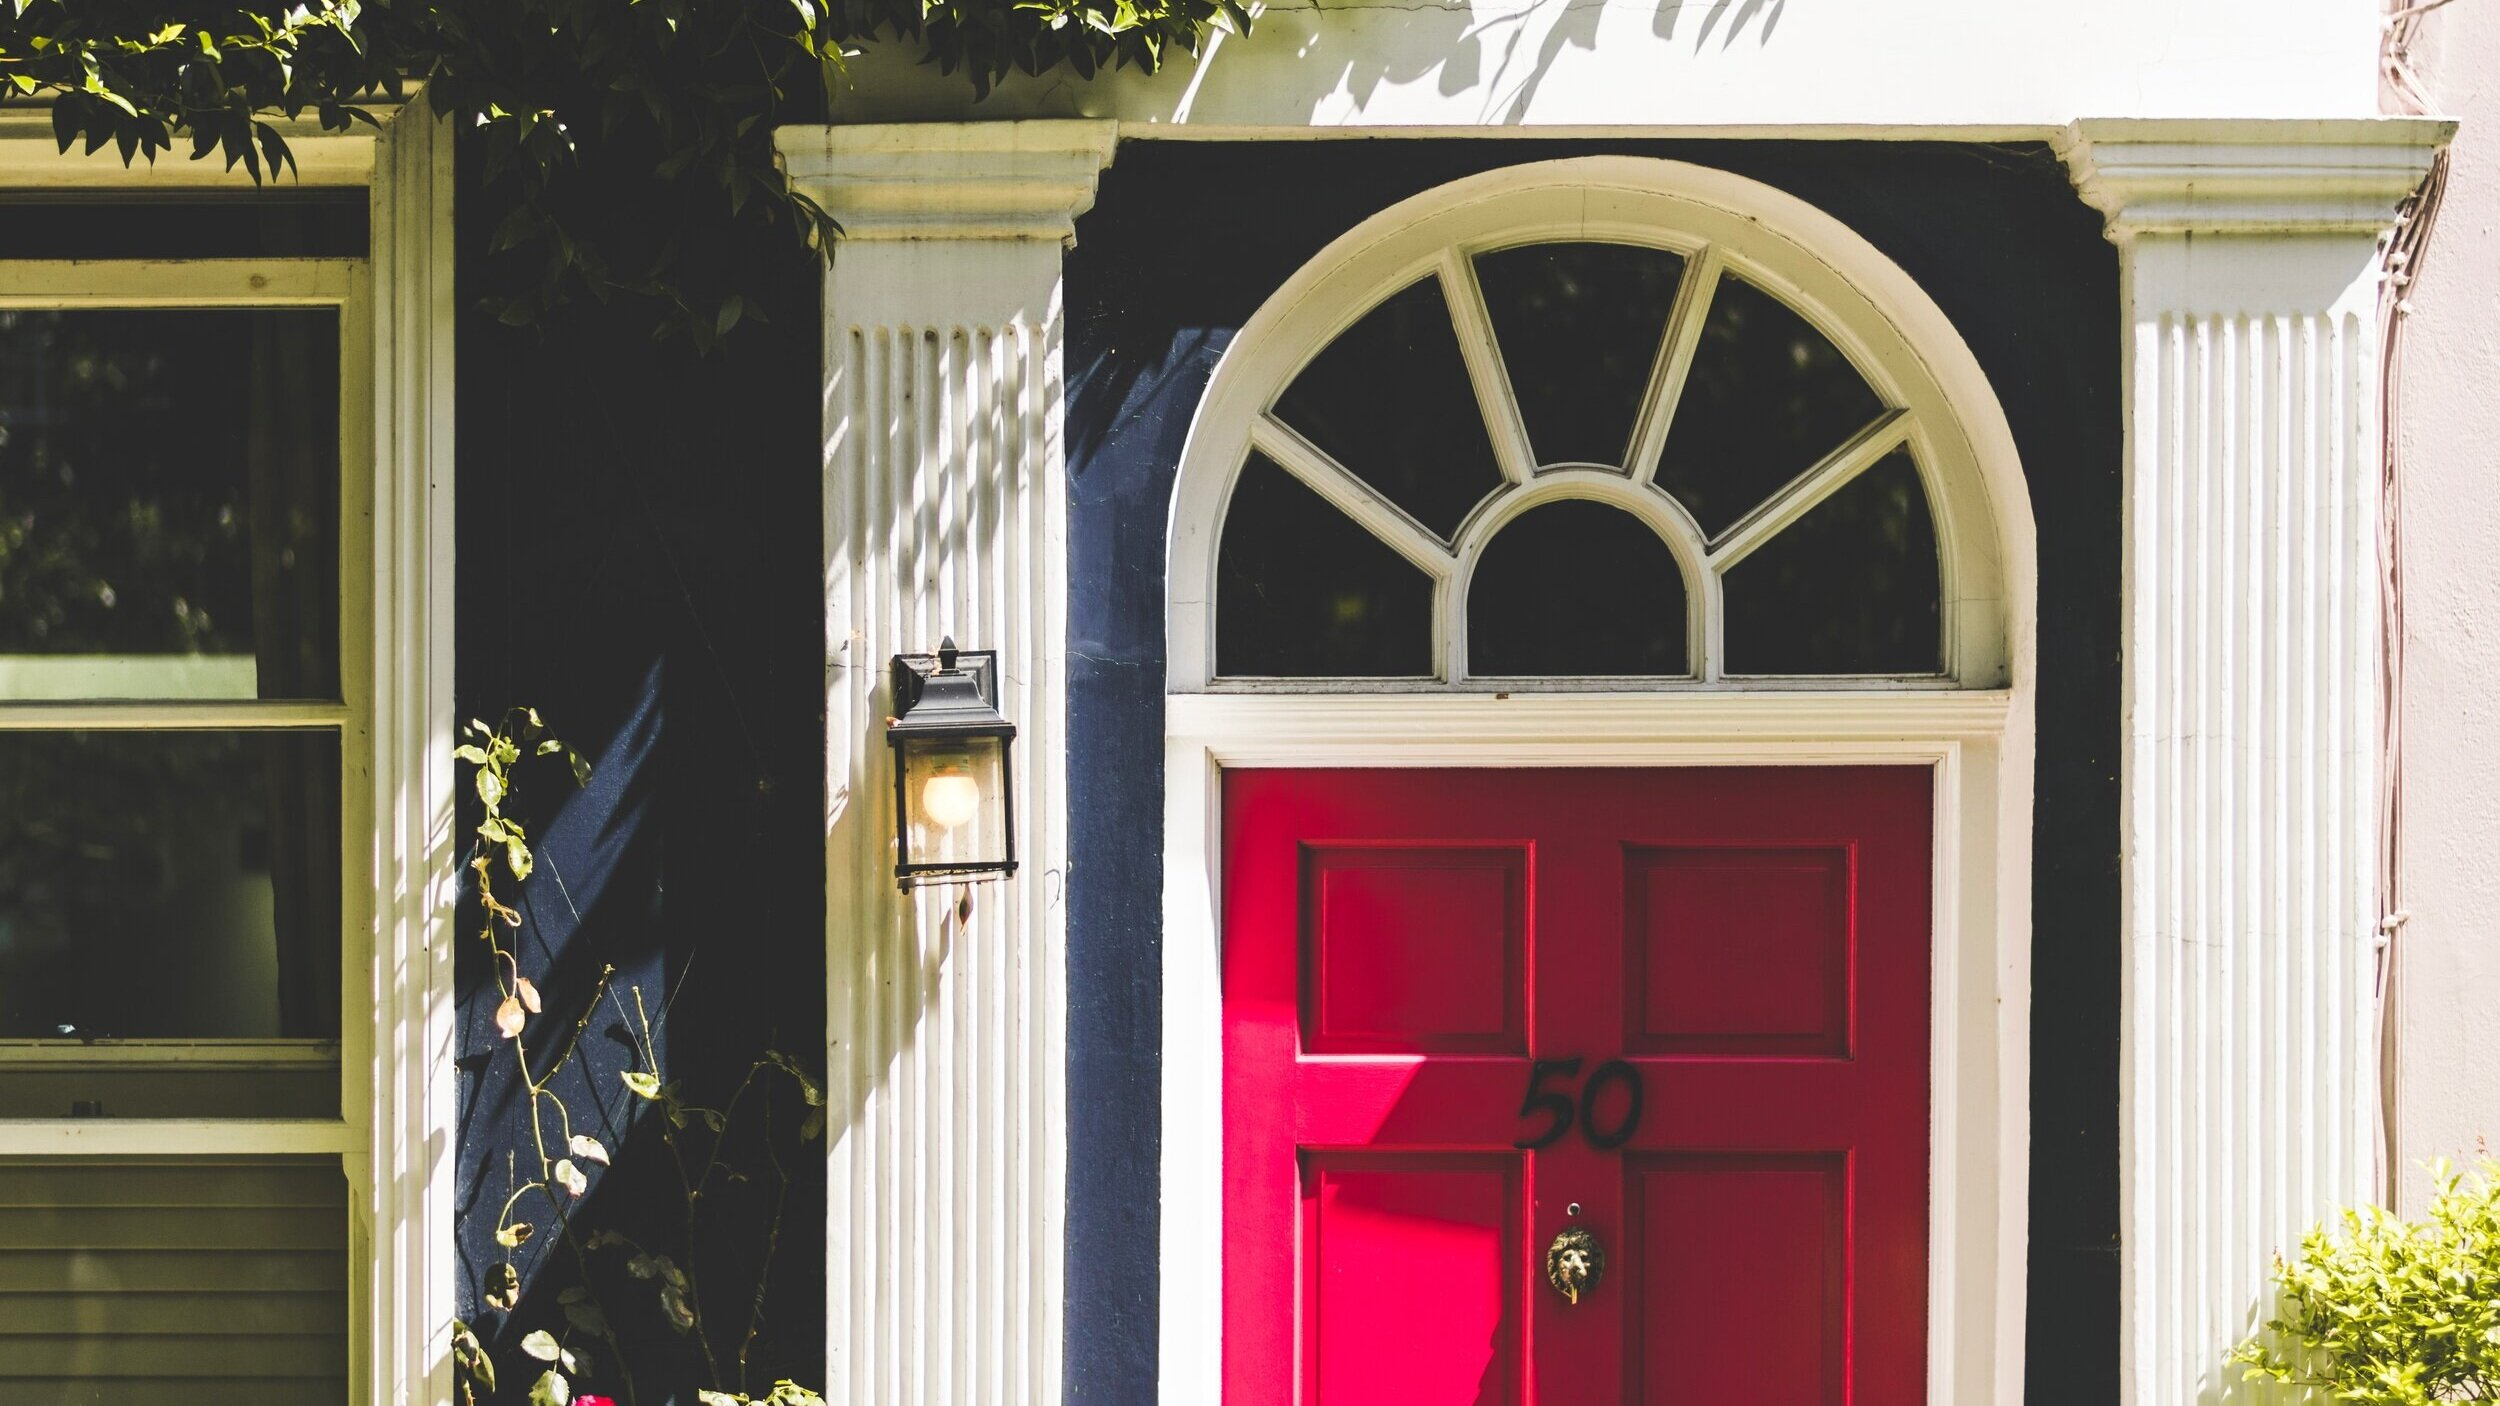 We're here to help you find a financial solution to purchase your home. -